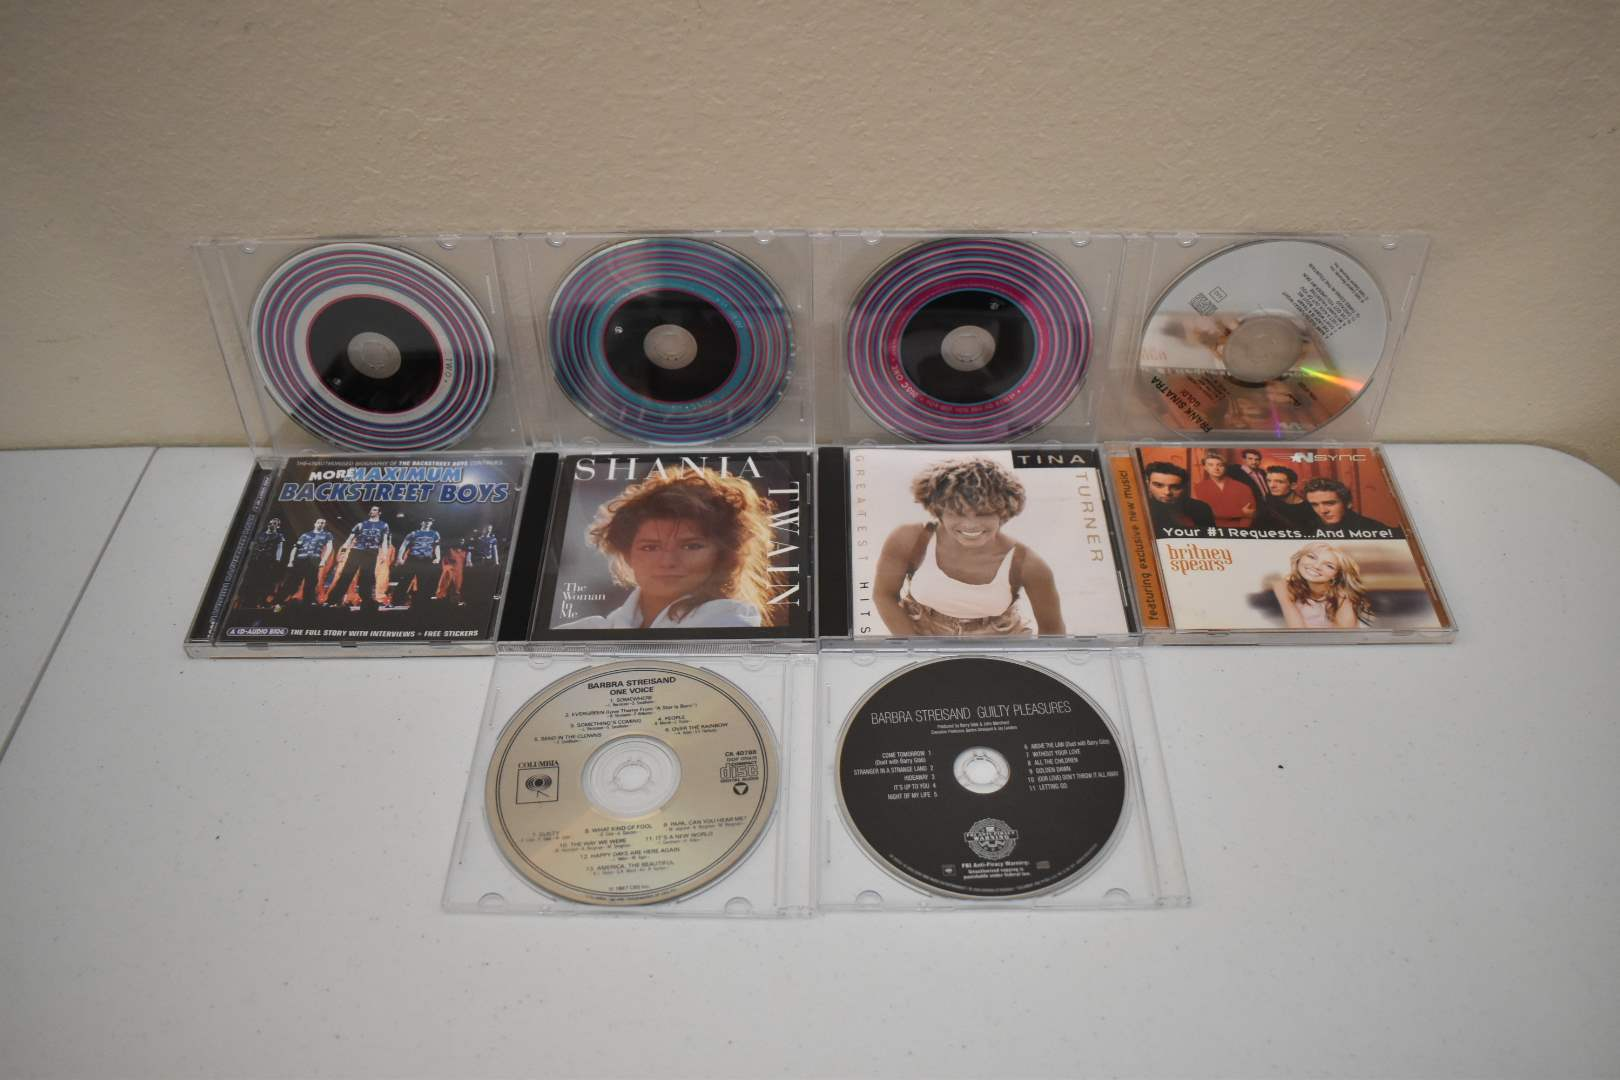 CDs: Hits of the 1950's and 60's, Backstreet Boys, etc